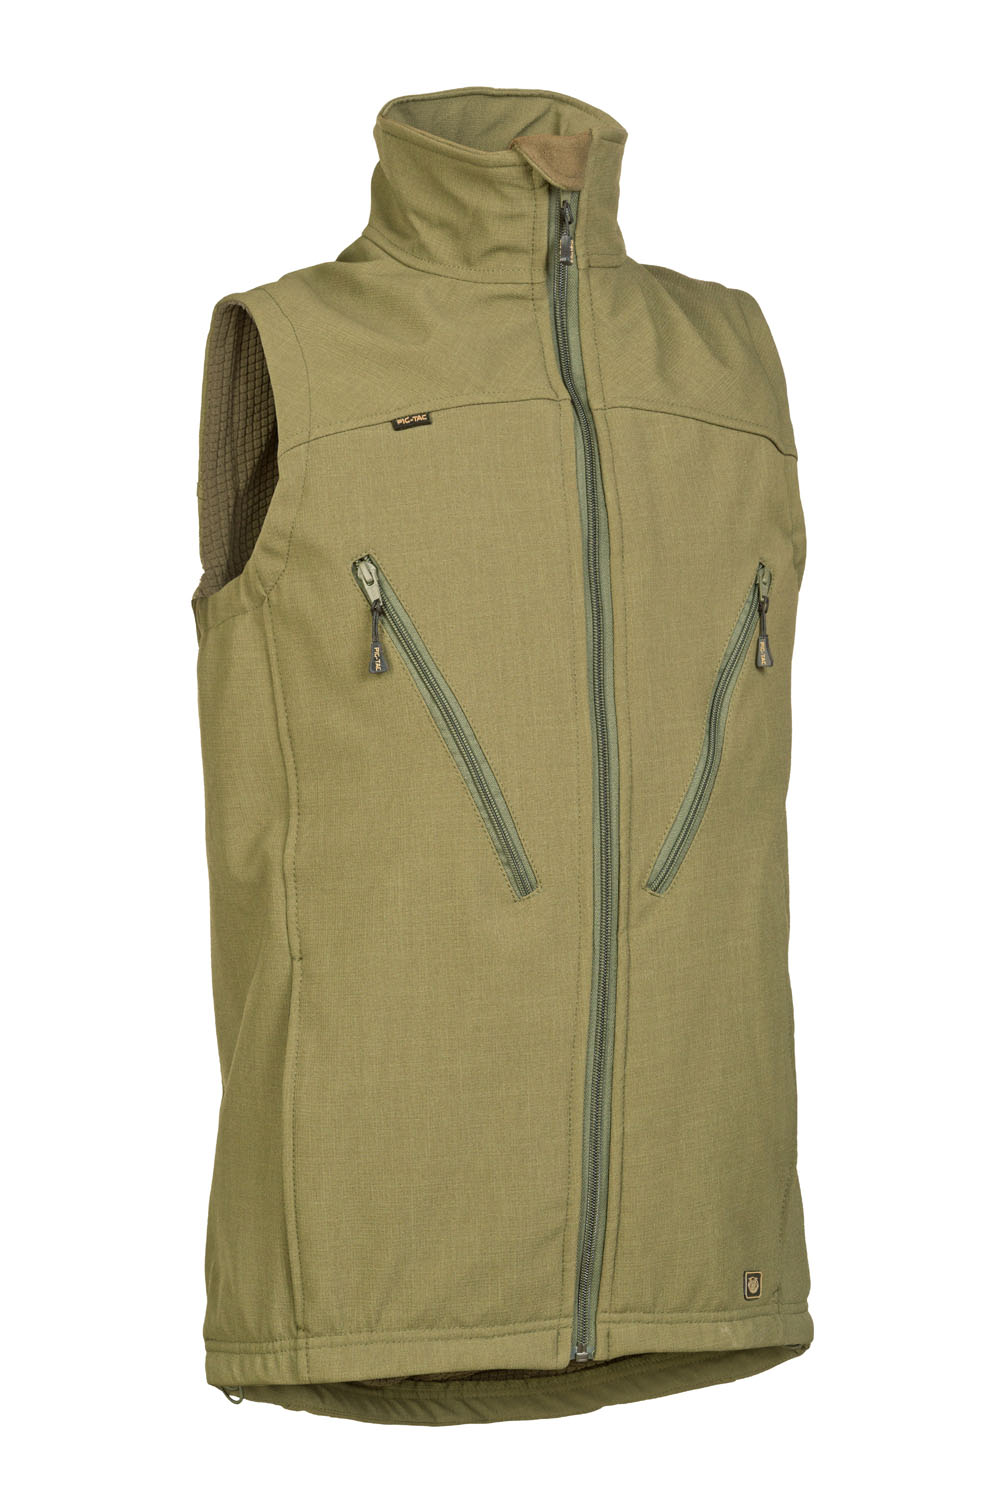 Demi-season mountain vest with lining